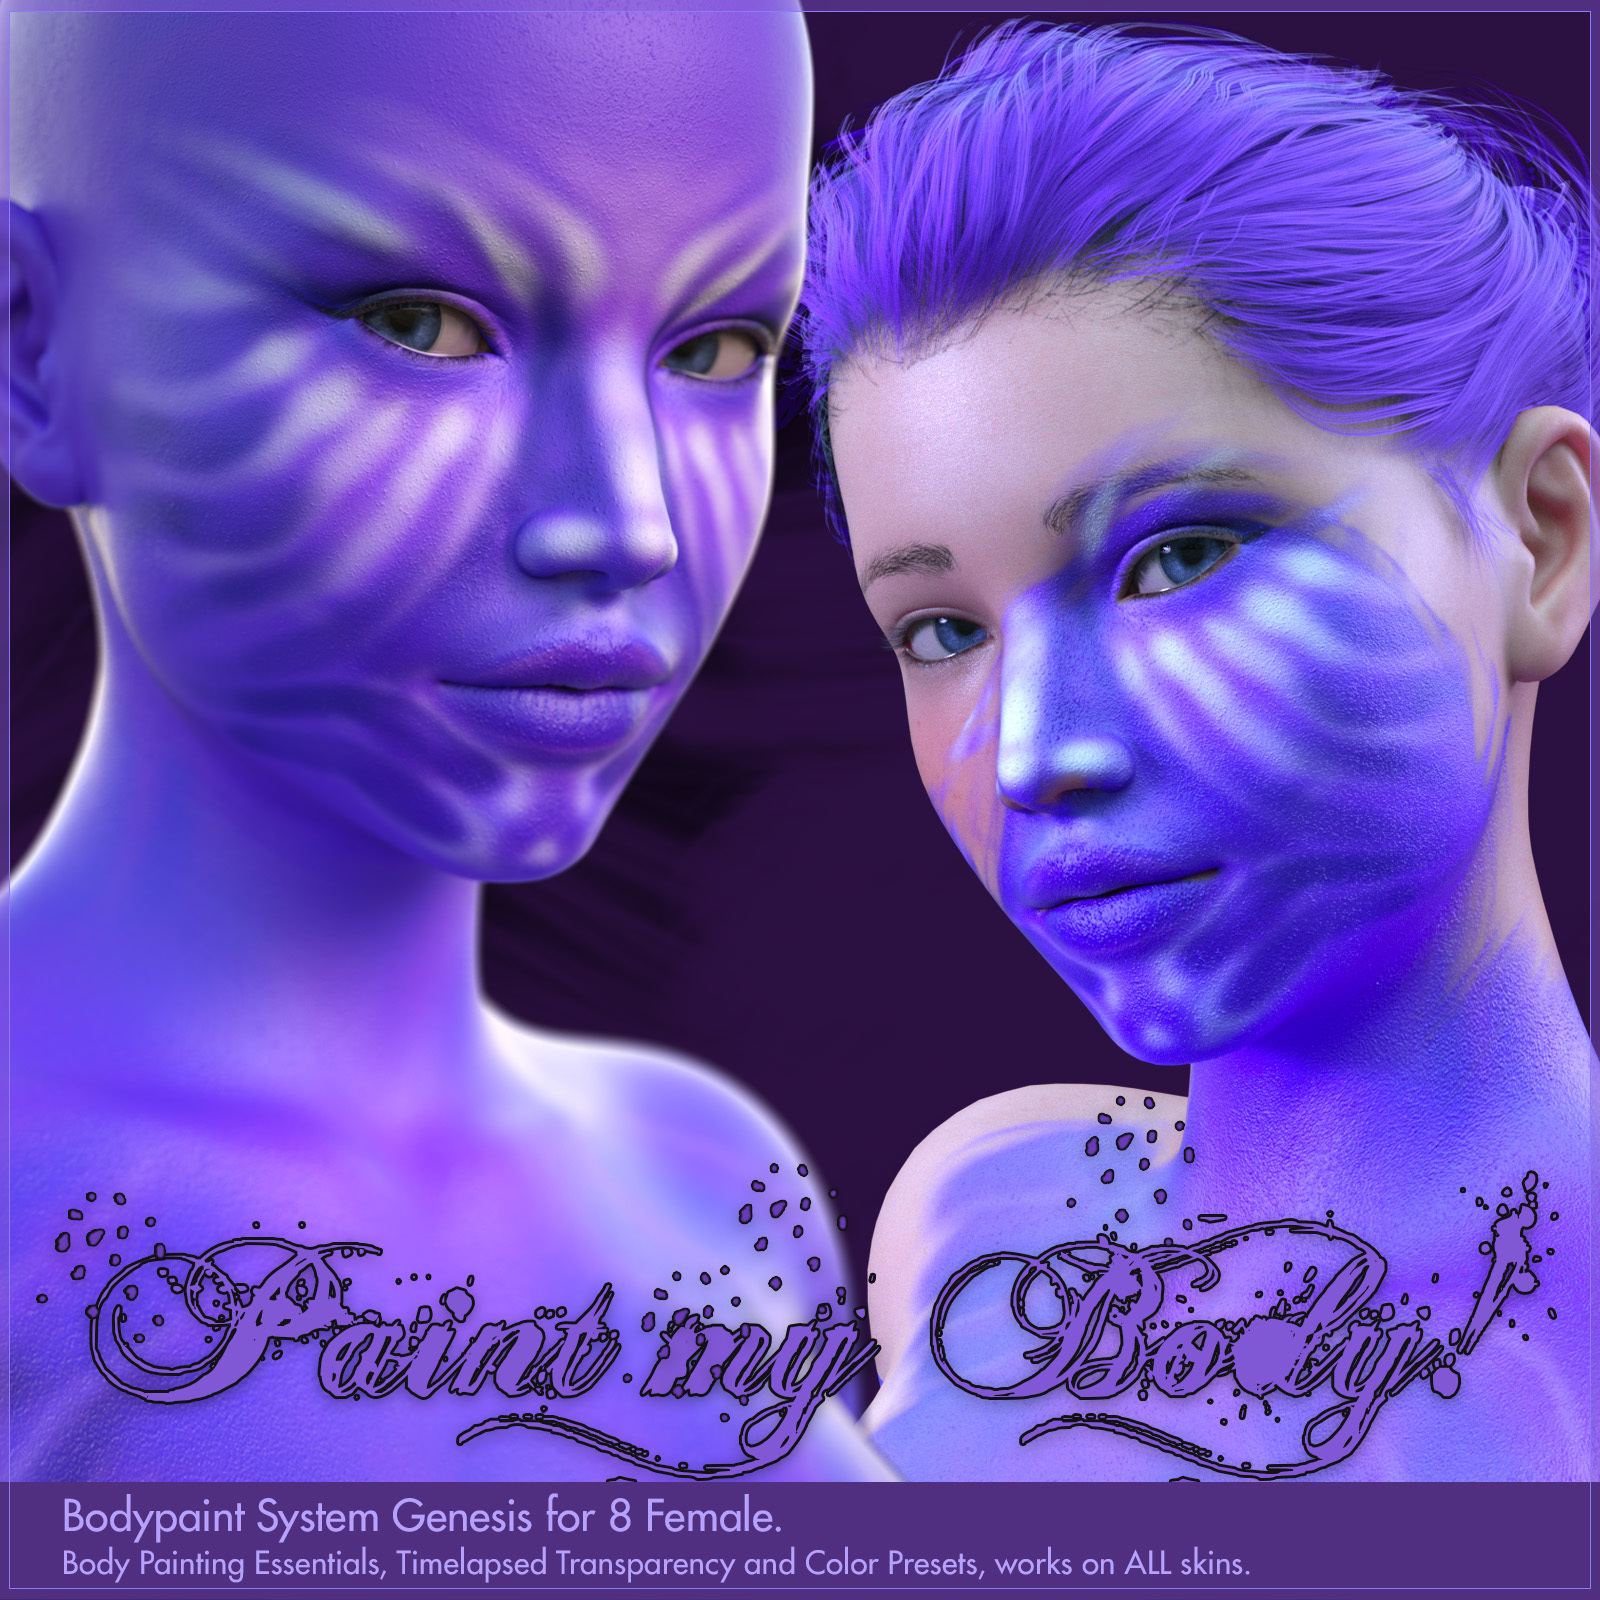 Bodypaint for Genesis 8 Female by DireWorks